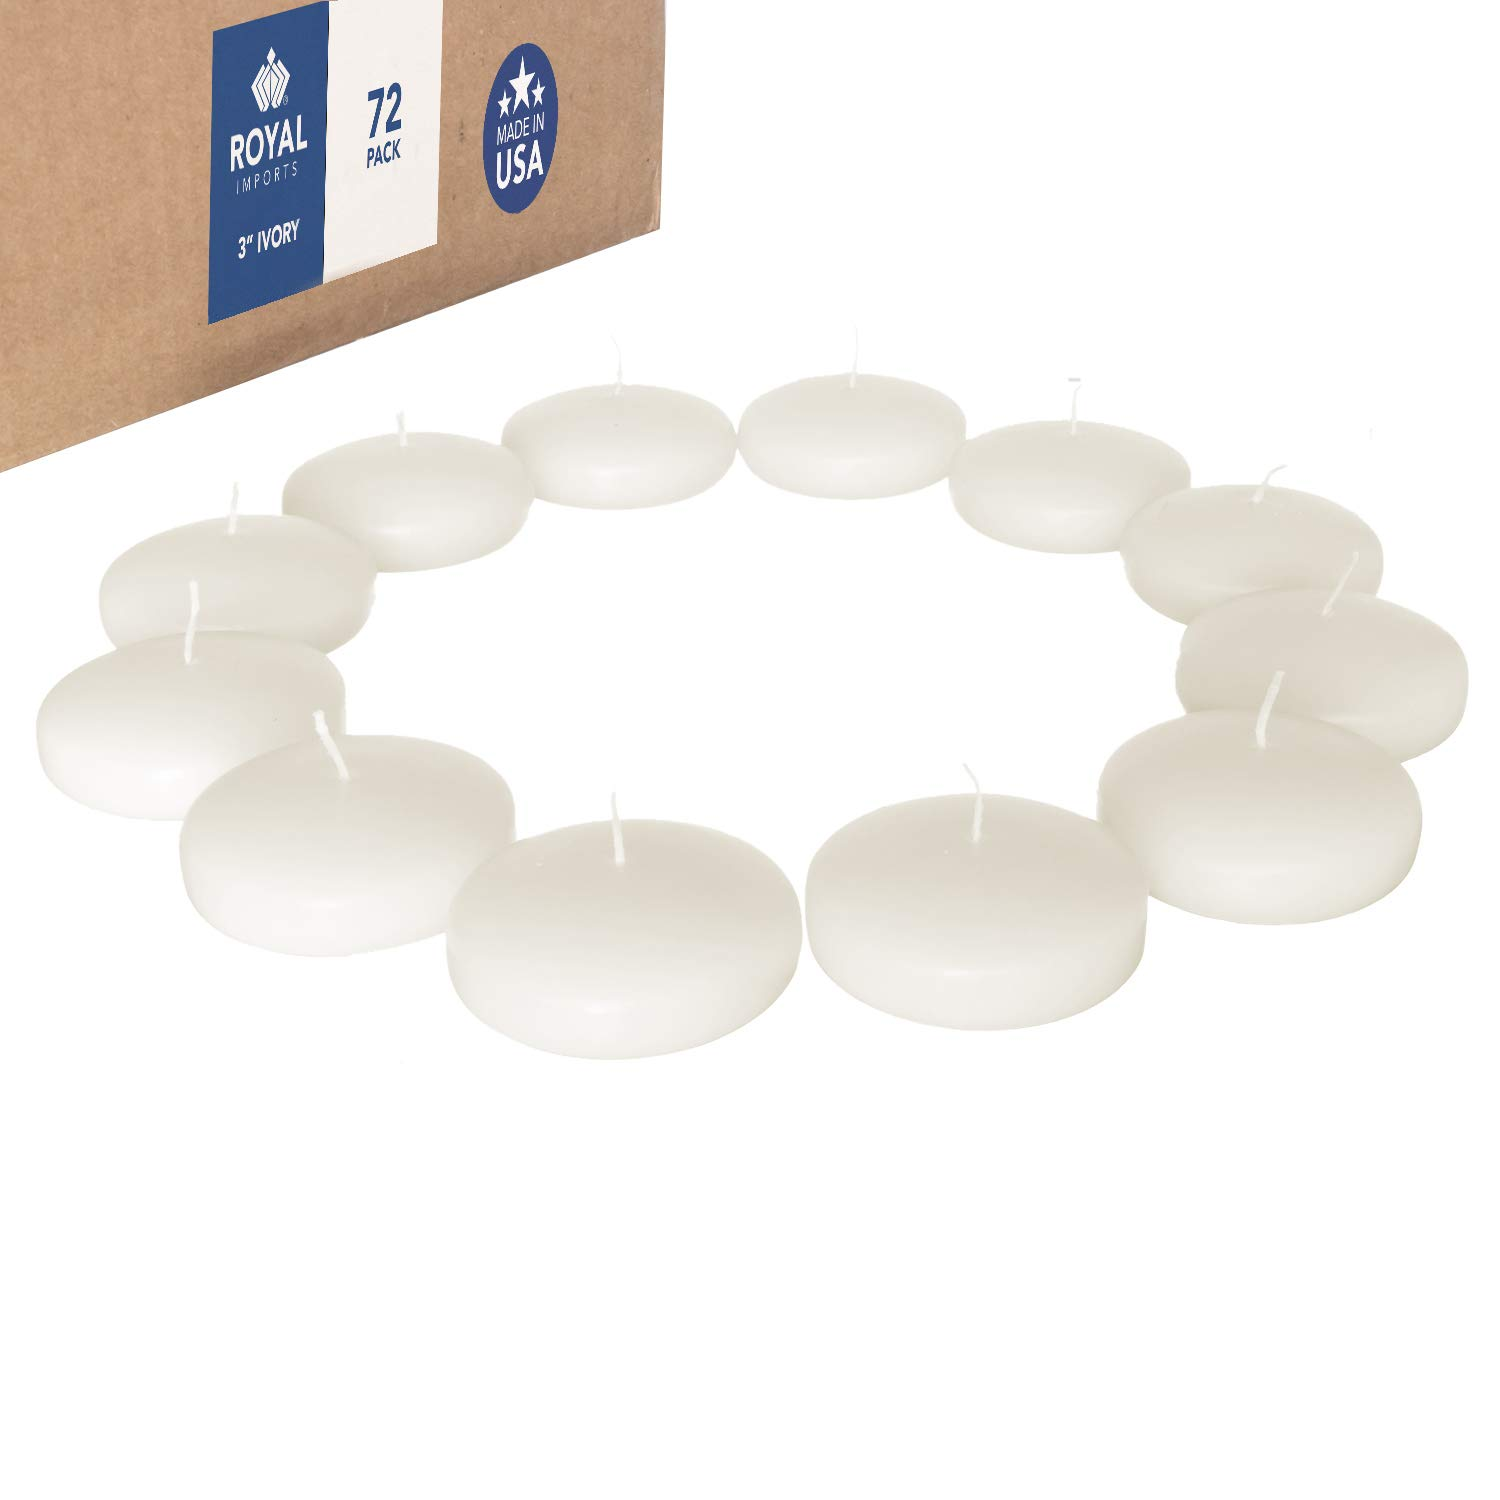 Royal Imports Floating disc Candles for Wedding, Birthday, Holiday & Home Decoration, Ivory (72, 3'')